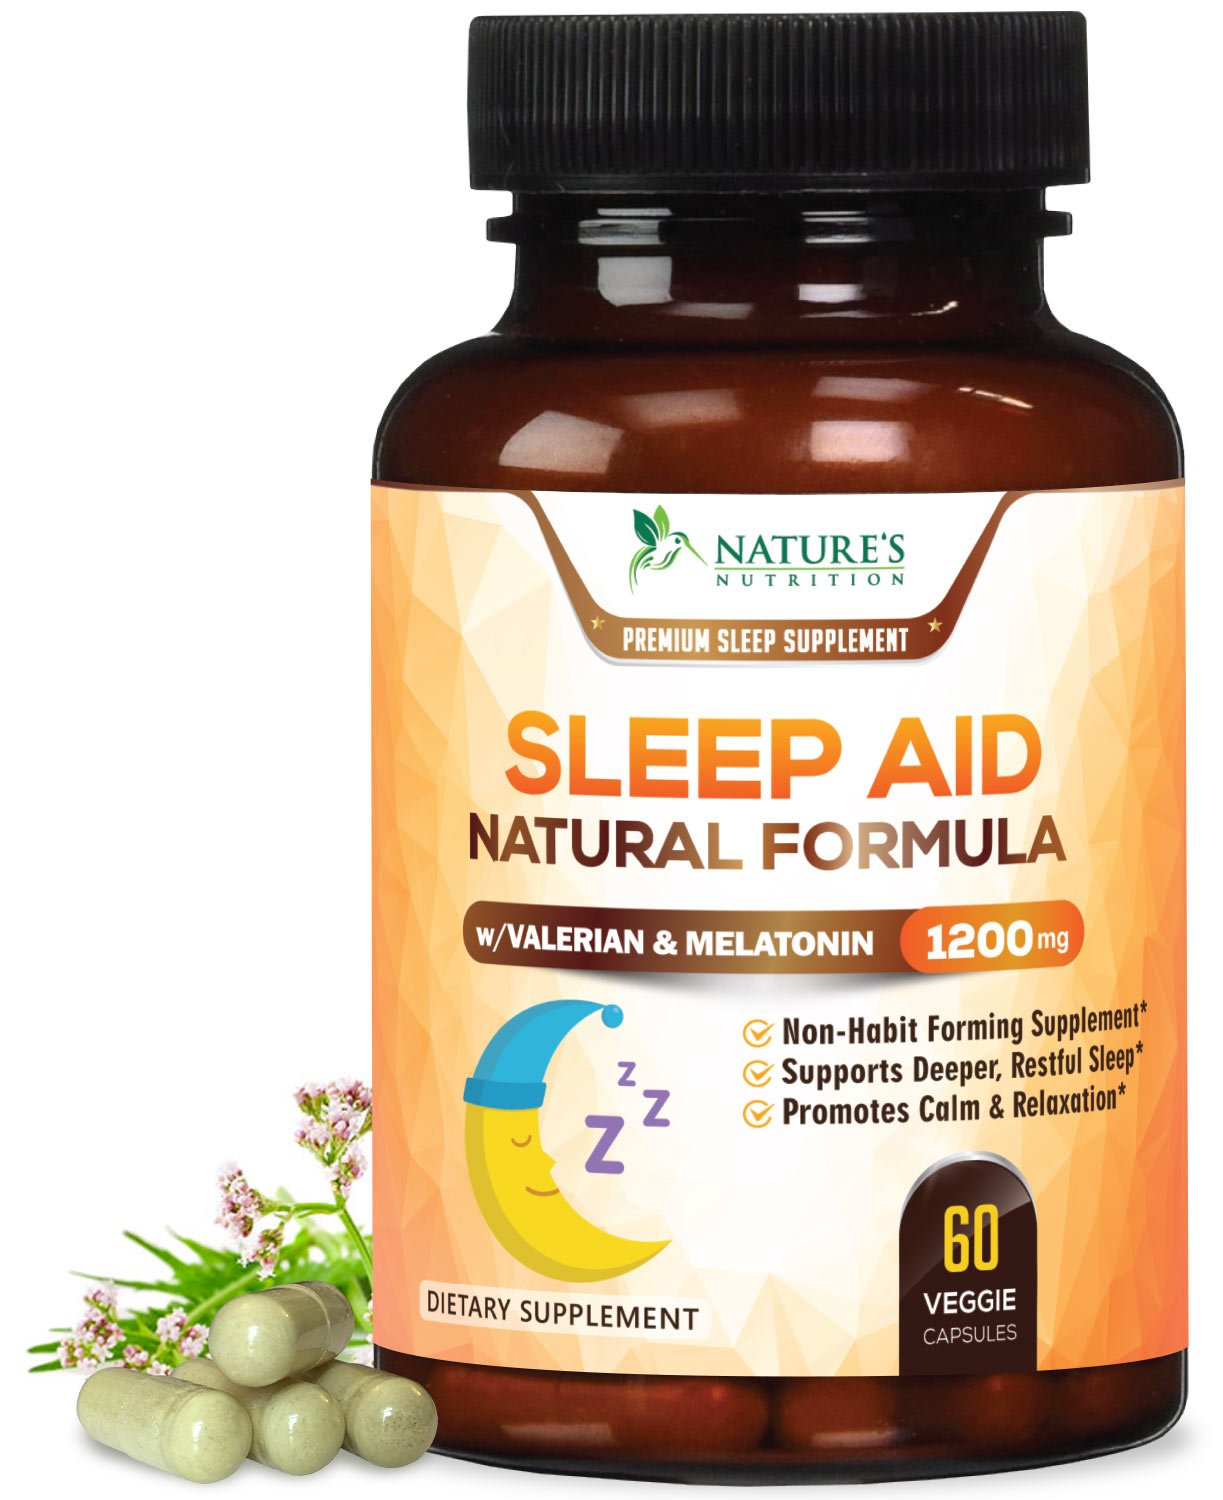 Natural Sleep Aid Supplement (Extra Strength) 1200mg - Non-Habit Forming Smart Sleeping Pills & Adrenal Fatigue with Melatonin, Valerian, Chamomile & Magnesium - Relax and Calm Formula - 60 Capsules